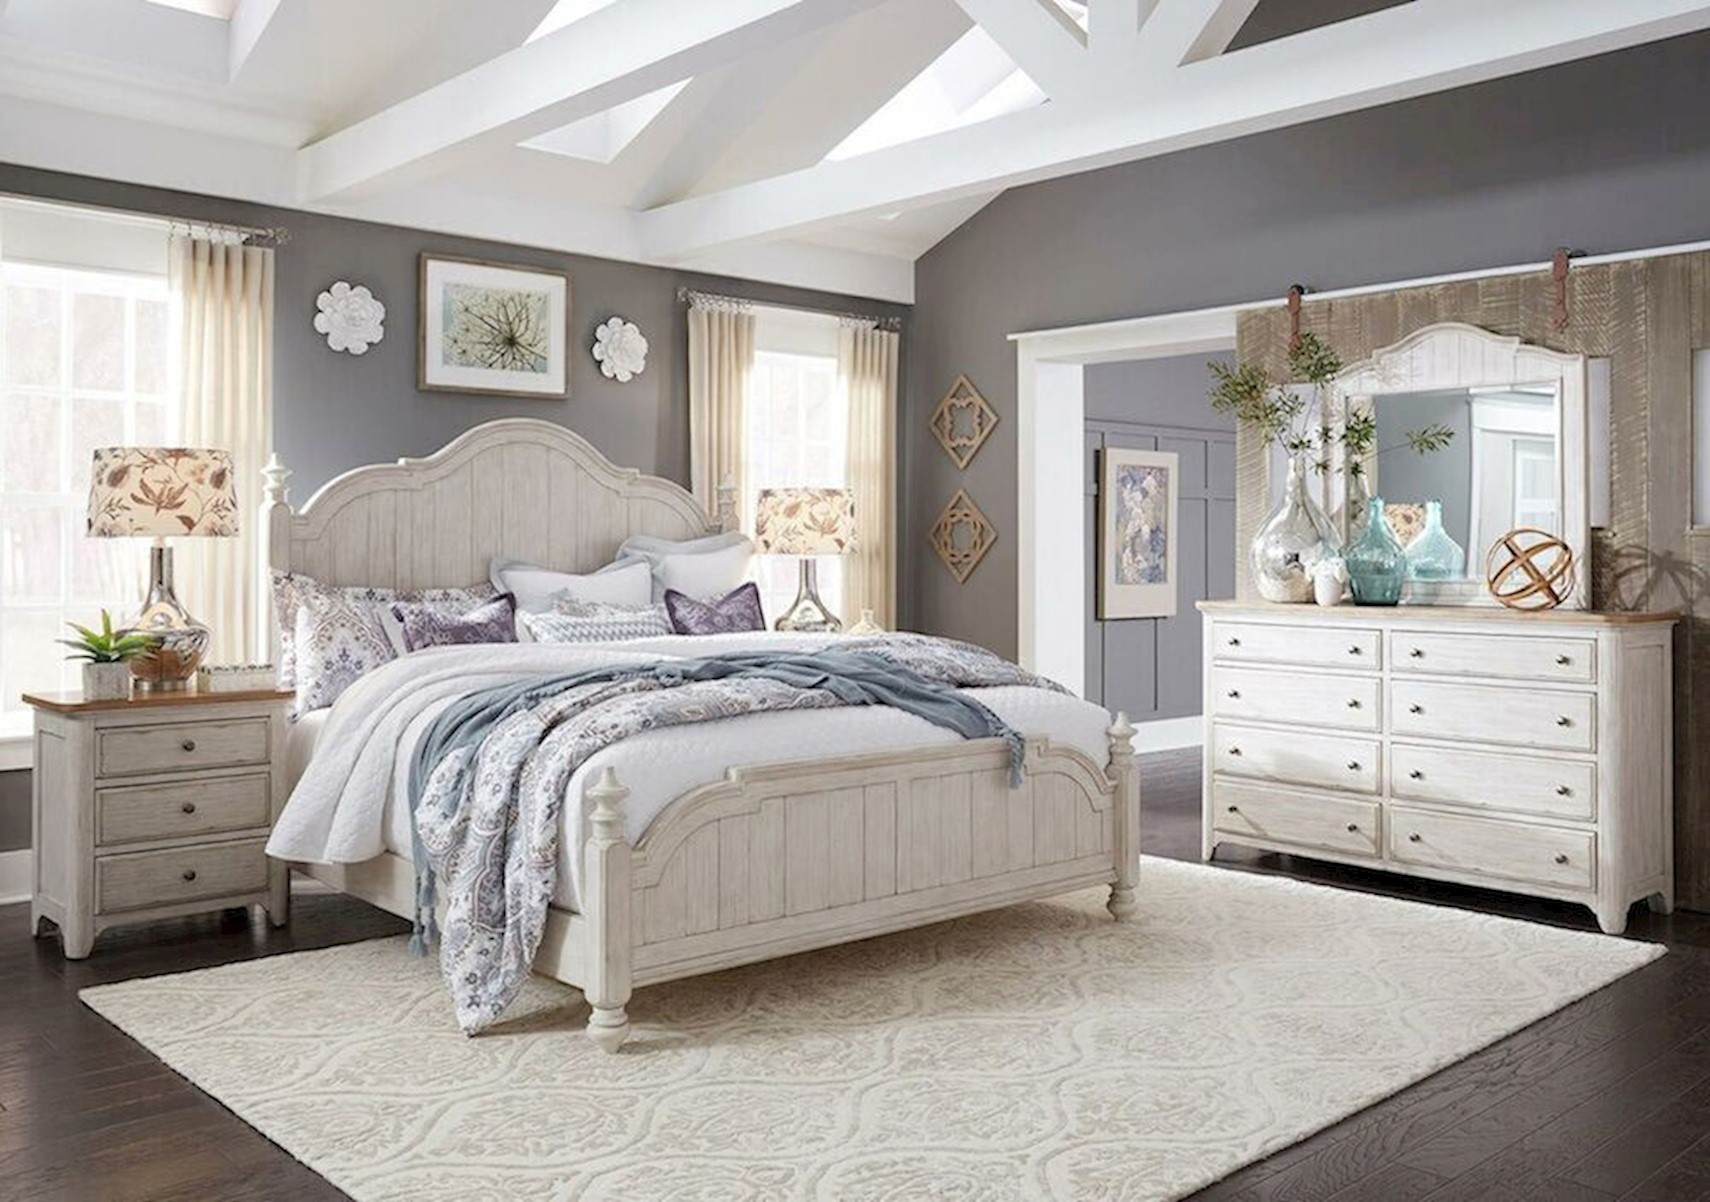 Lacks Farmhouse 4 Pc King Bedroom Set